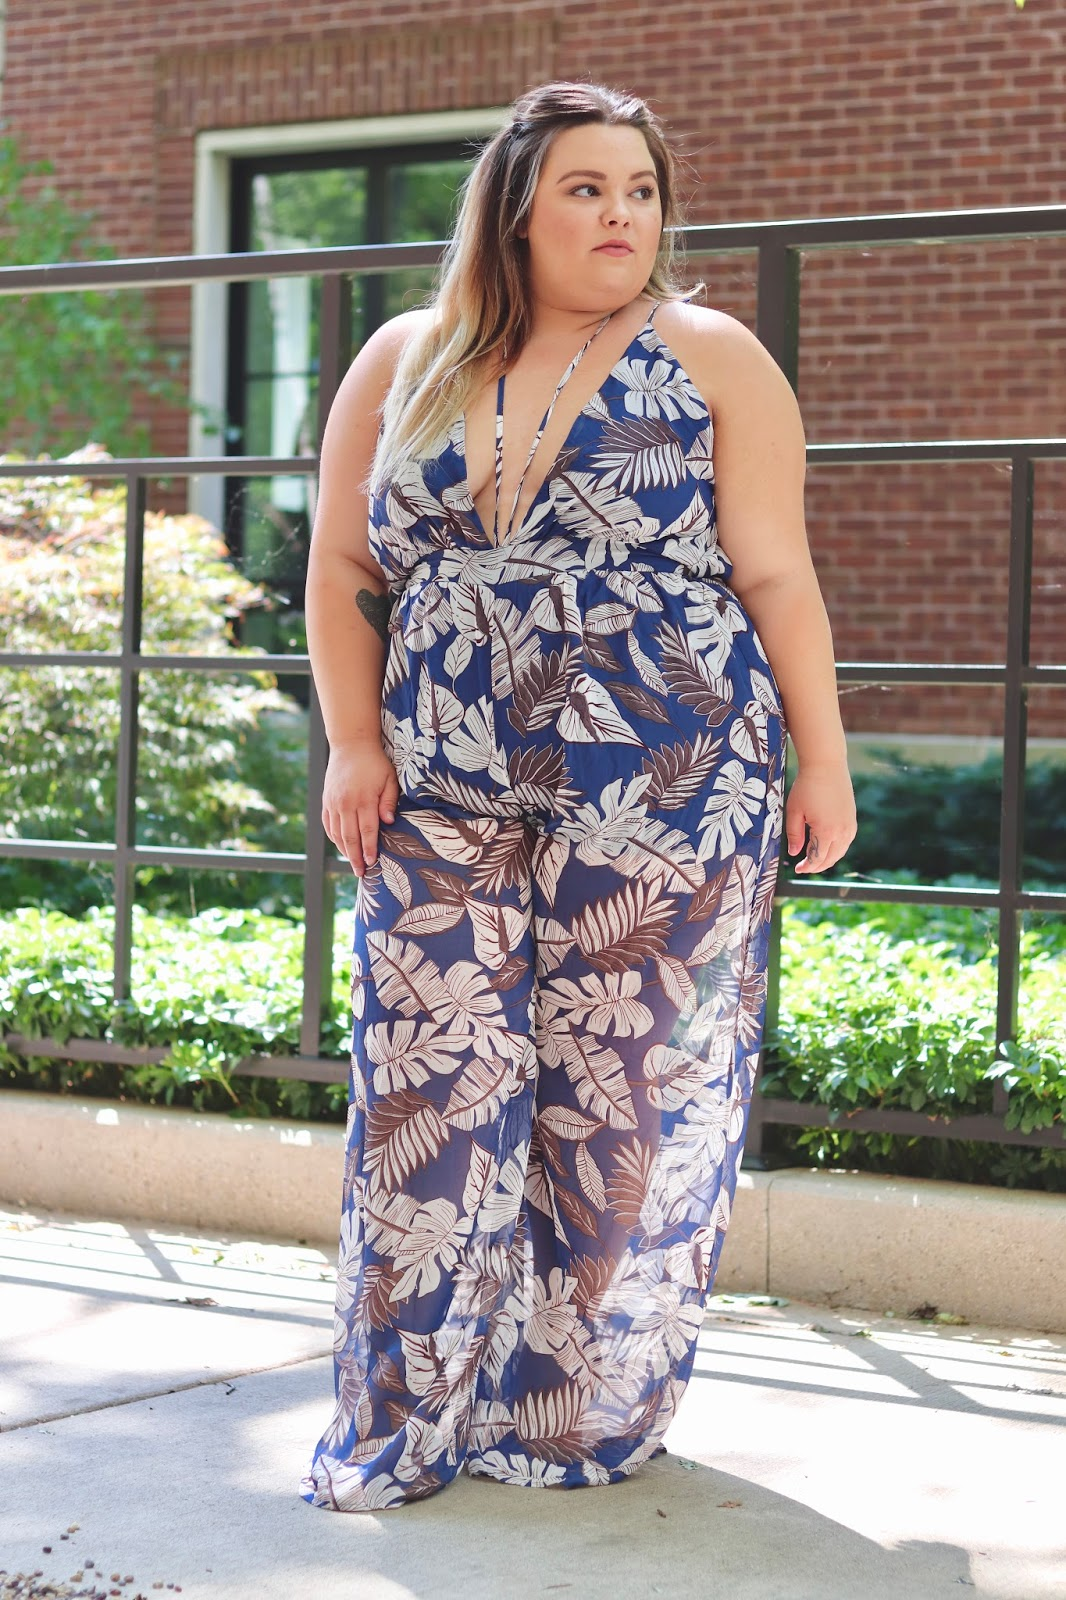 chicago plus size fashion blogger, plus size fashion blogger, fashion nova curve, fashion nova, blogger review, sexy jumpsuit, plus size clothing, affordable plus size clothes, plus size jumpsuits, natalie craig, Natalie in the city, curves and confidence, full figured fashion, plus size, eff your body standards, embrace your curves